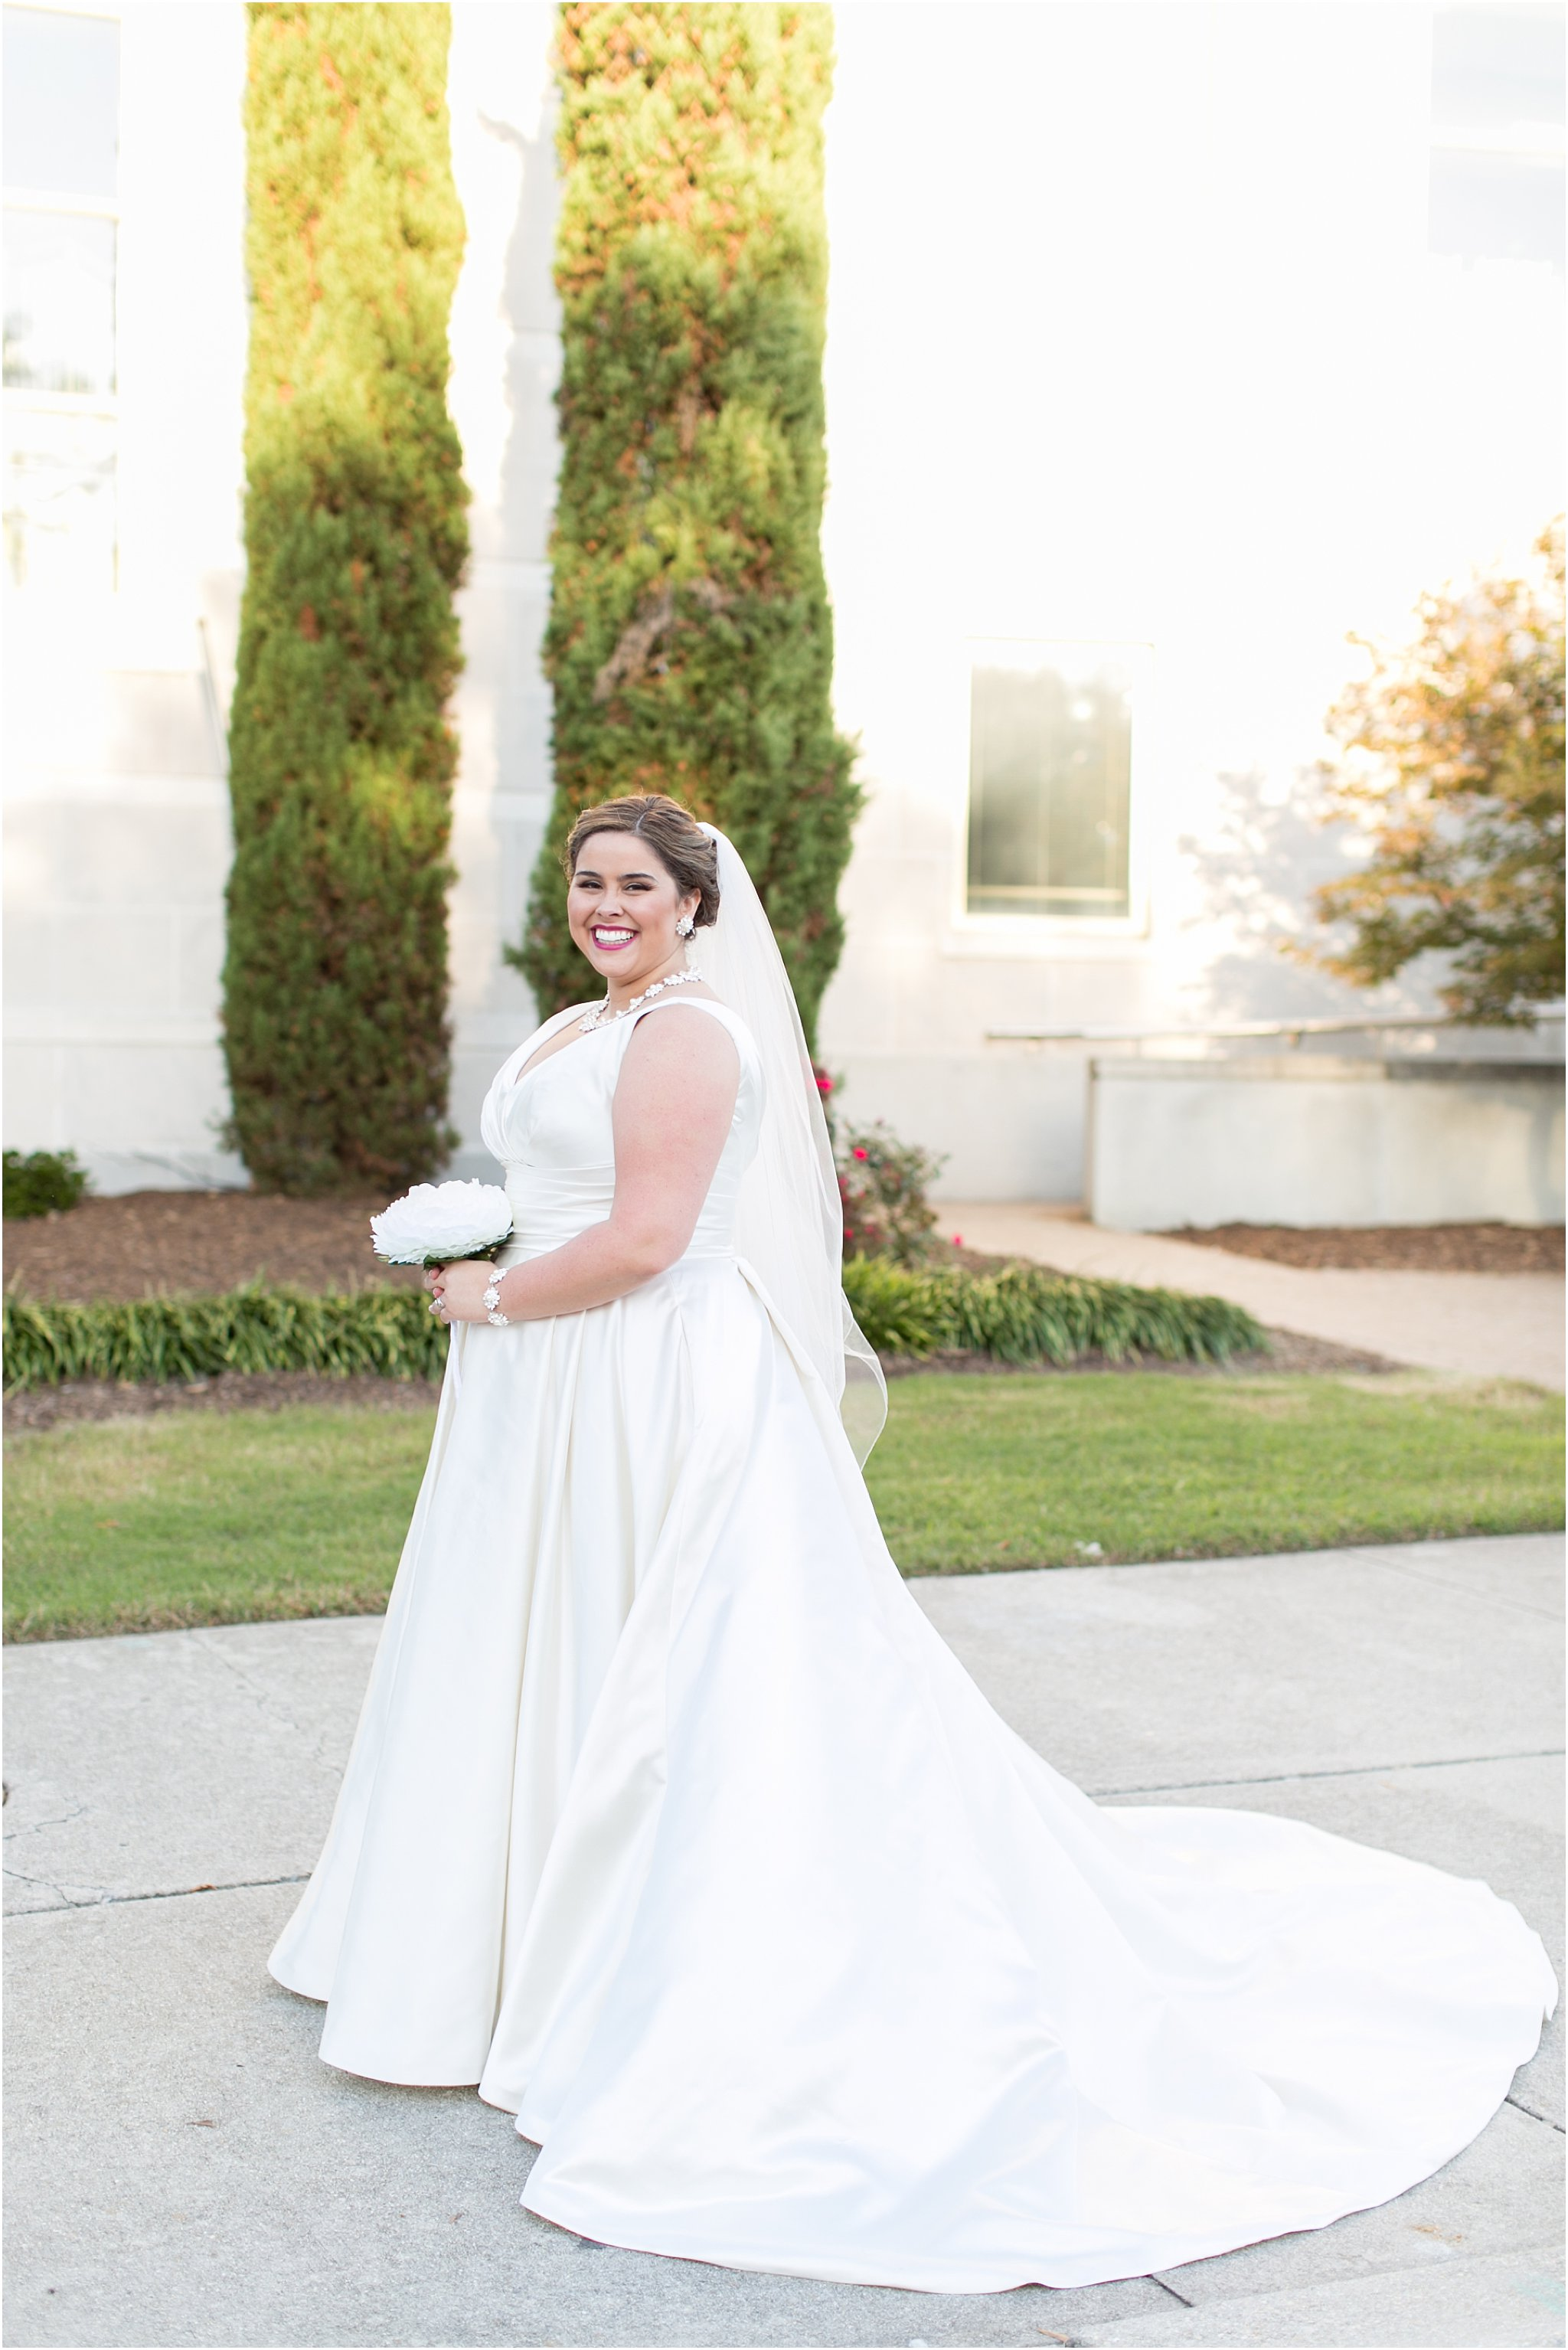 va_jessica_ryan_photography_virginia_wedding_norfolk_harrison_opera_house_norfolk_arts_district_portraits_3804